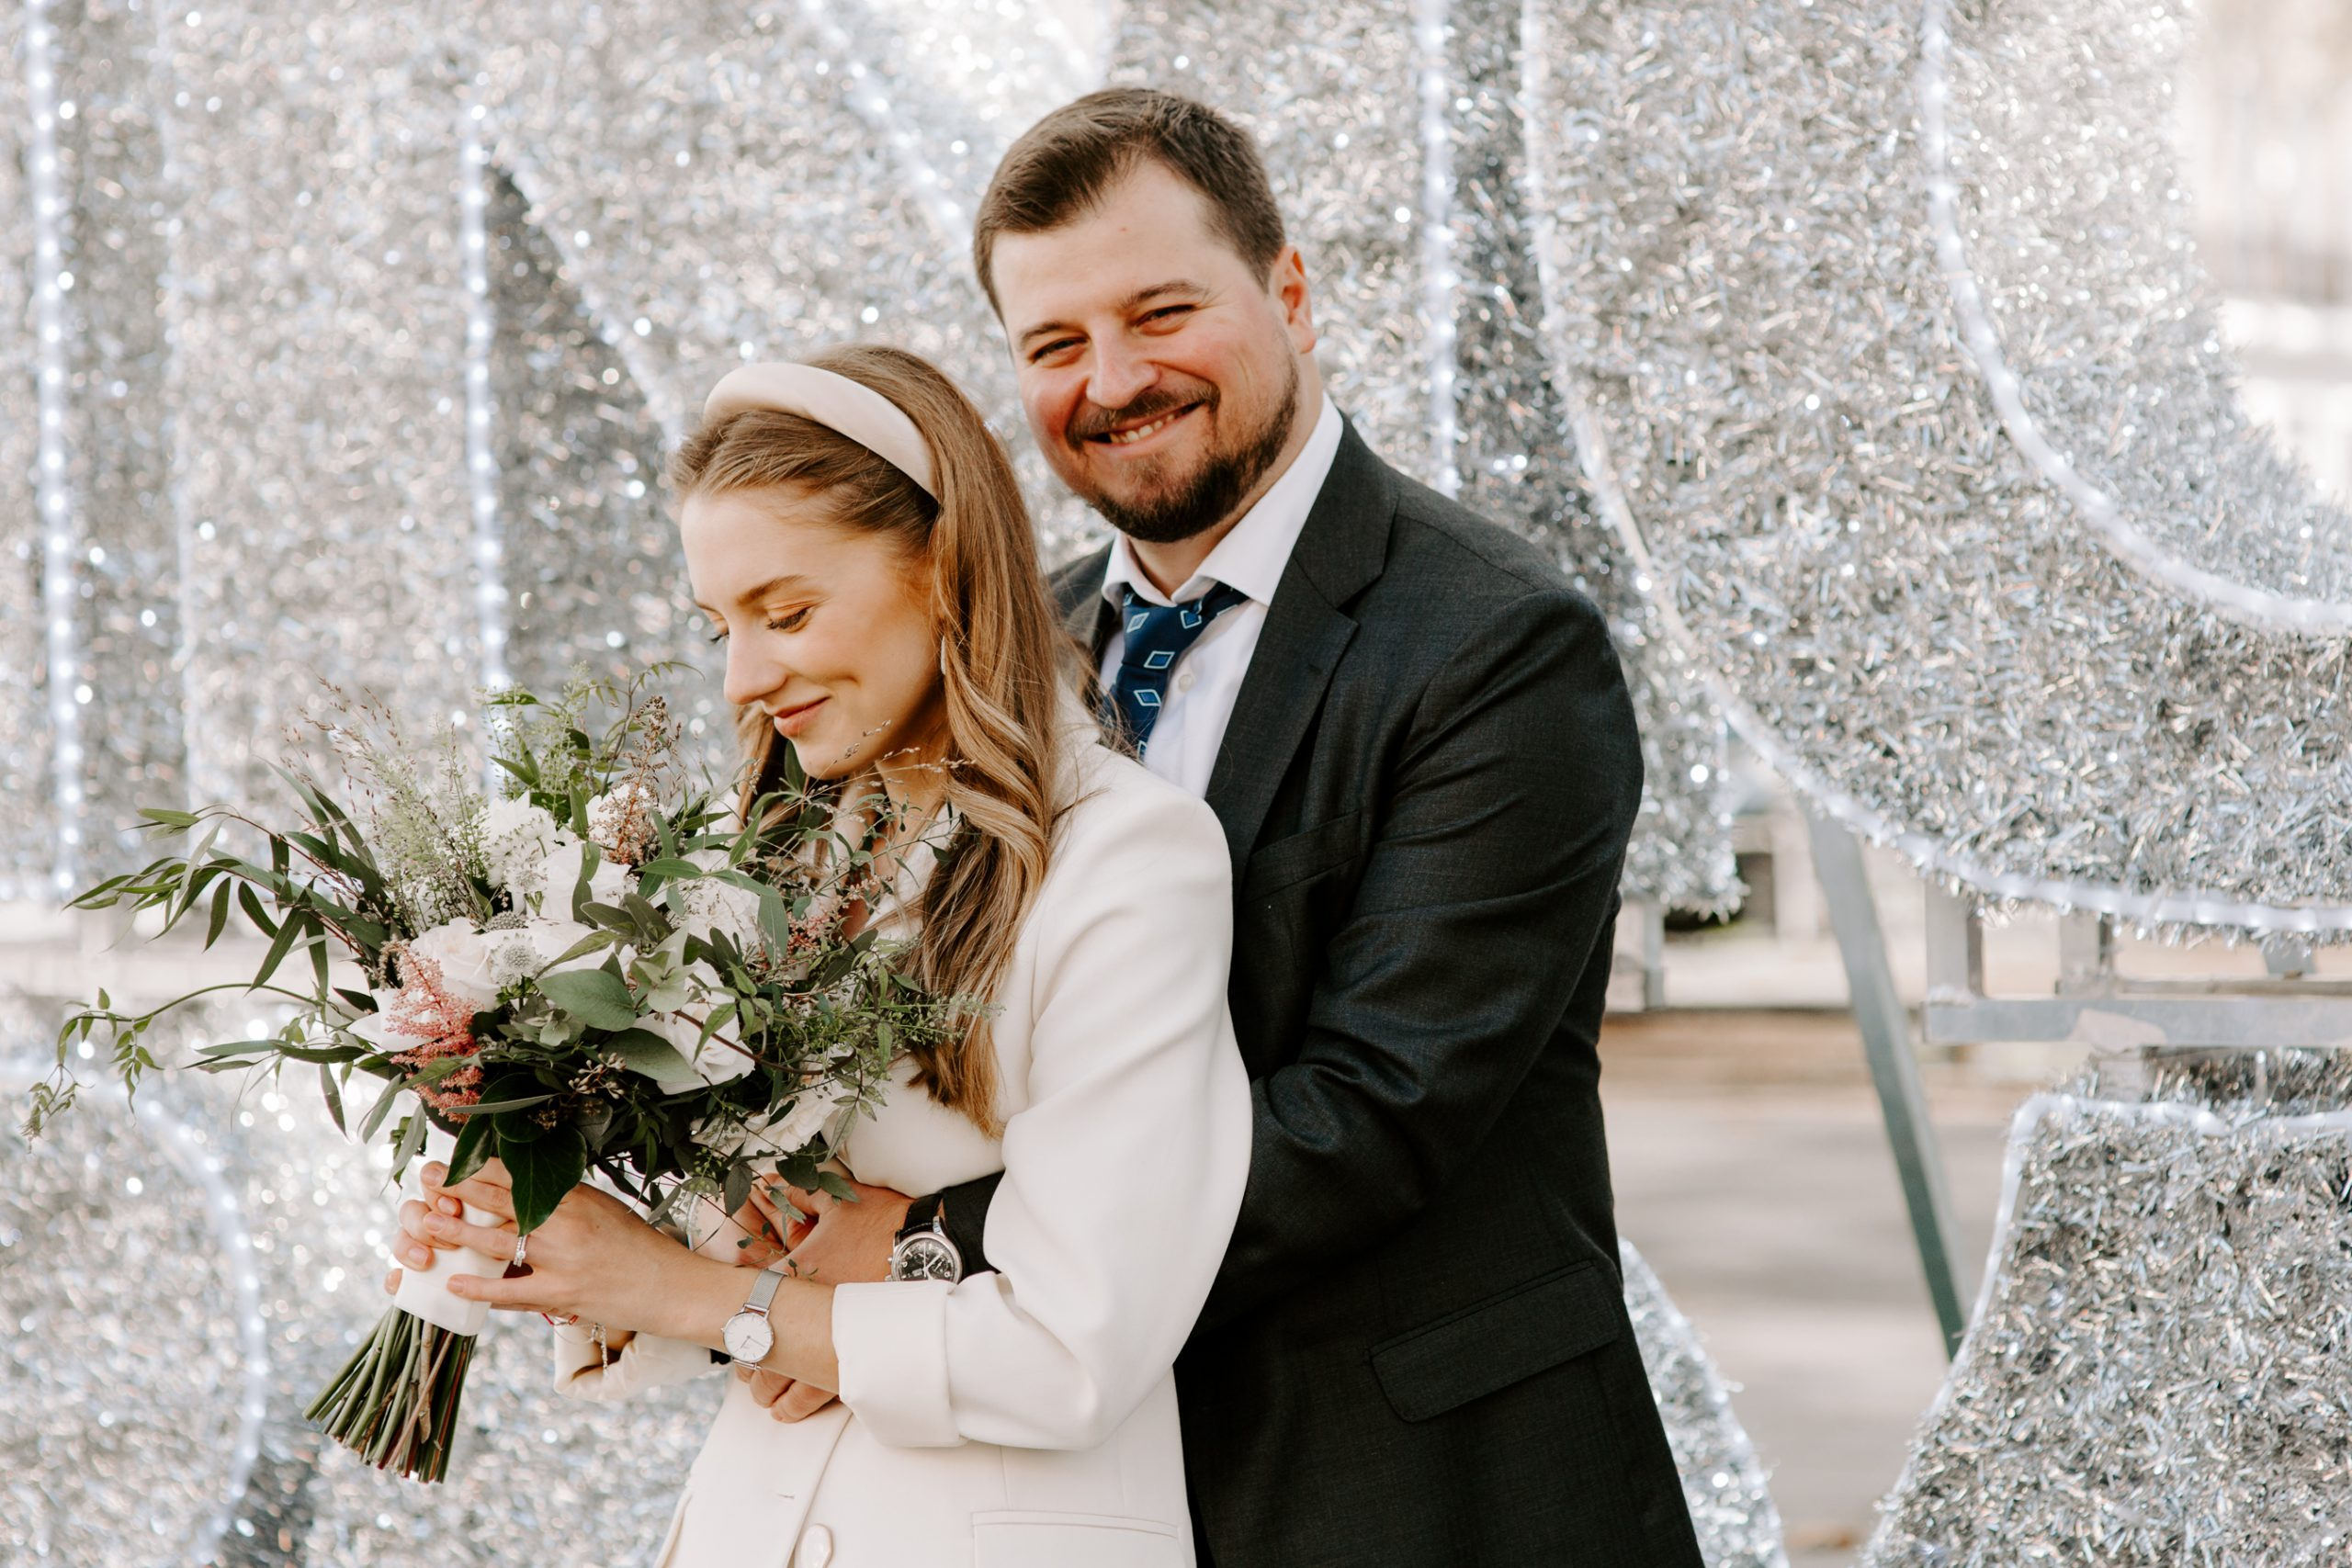 Bride and groom in front of sparkly Christmas backdrop